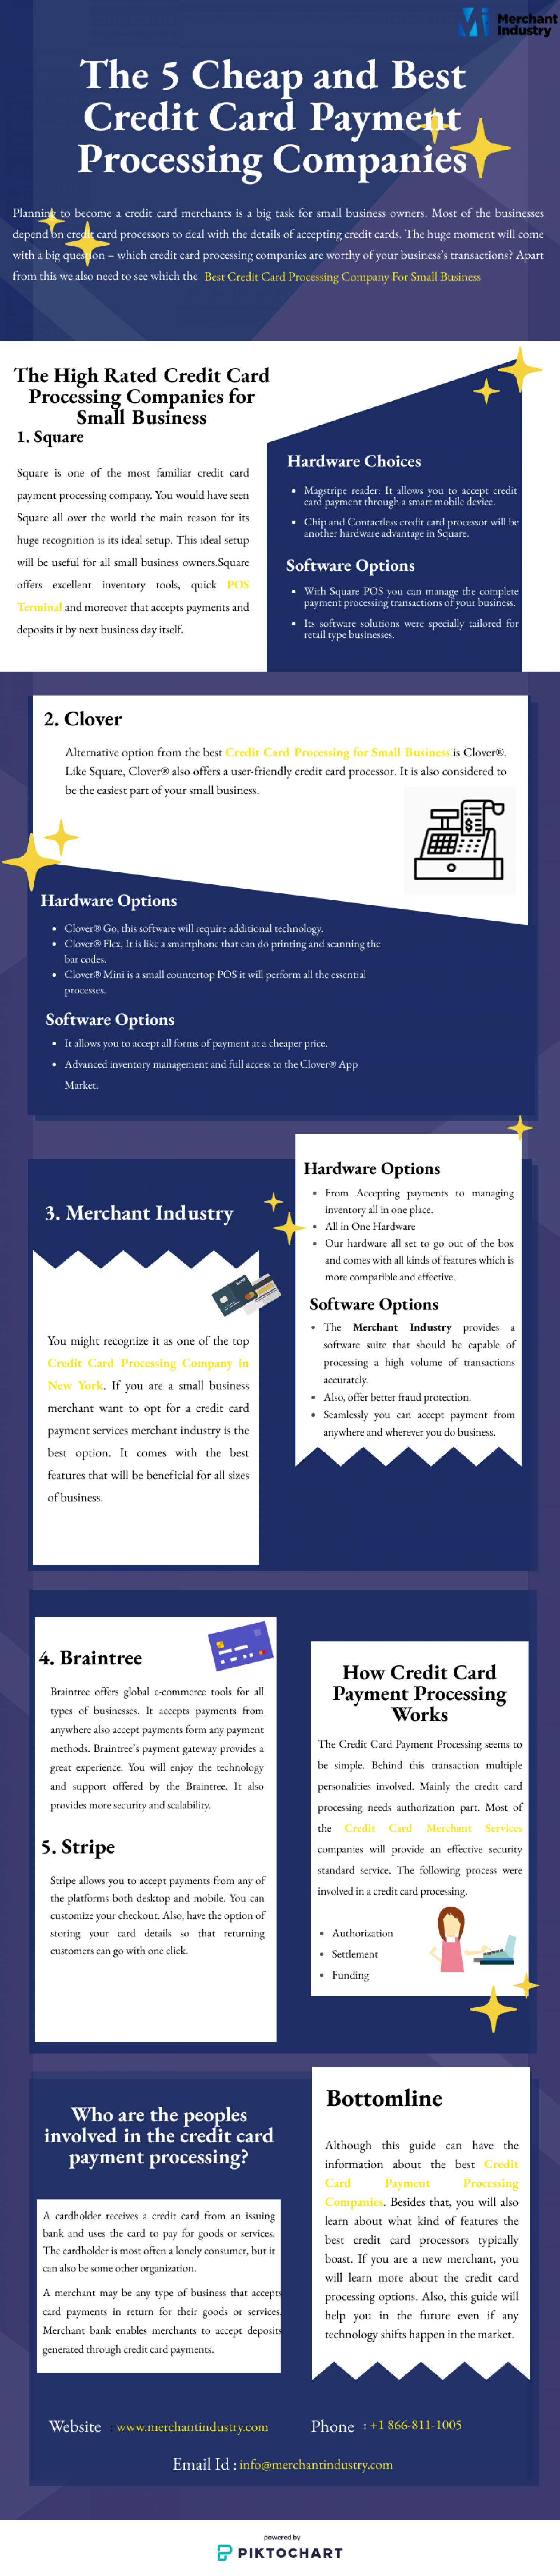 The 5 Cheap and Best Credit Card Payment Processing Companies  Infographic